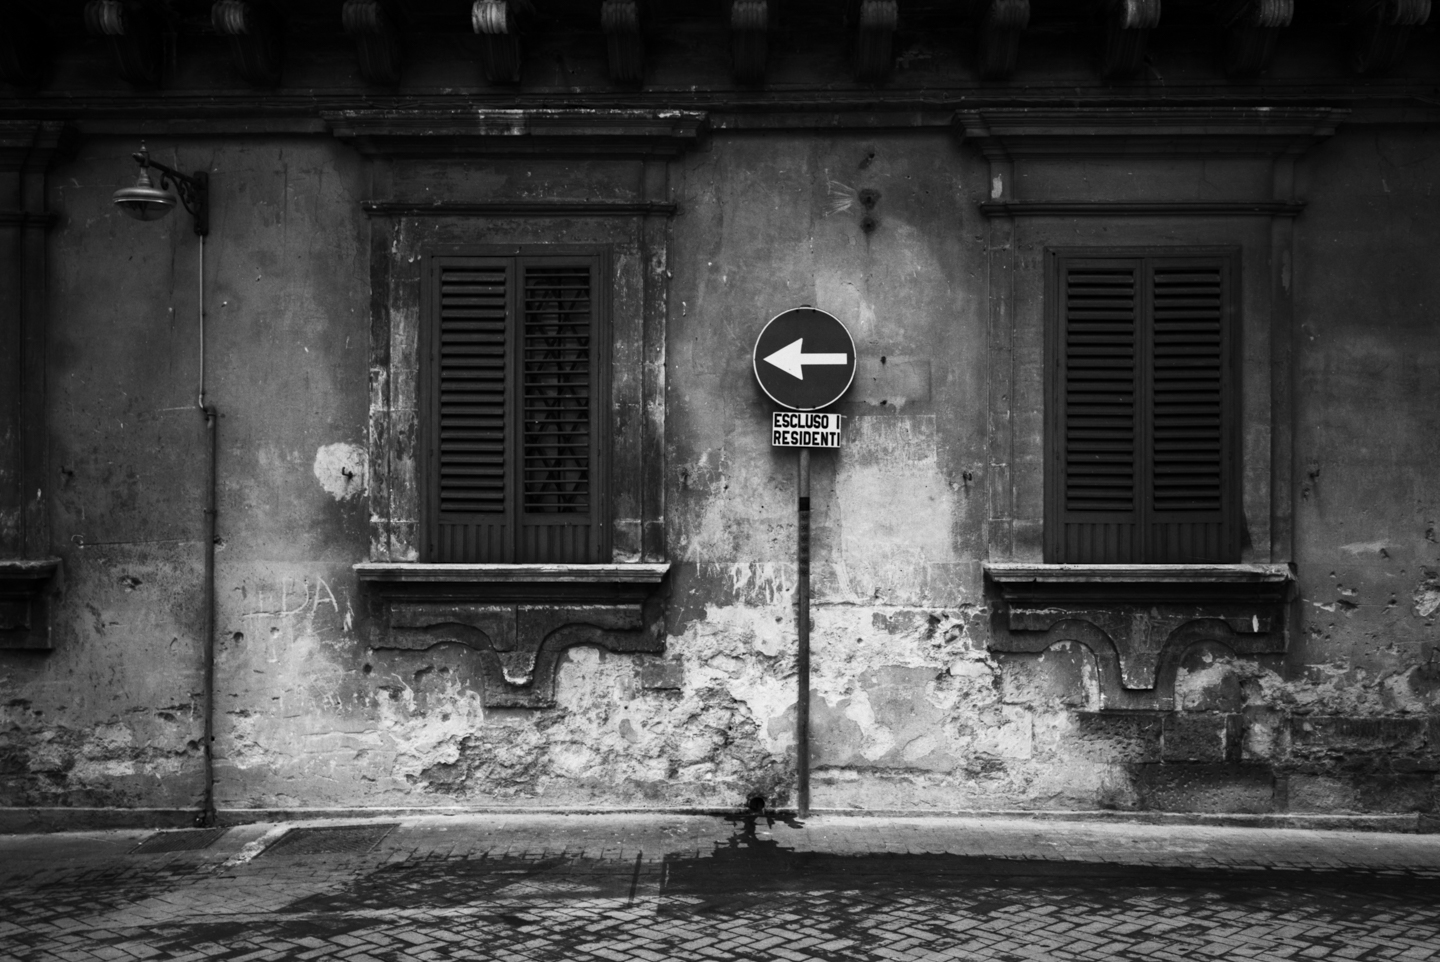 Black and White, Photograph, Excluso I Residenti, Rome, Italy, 2005